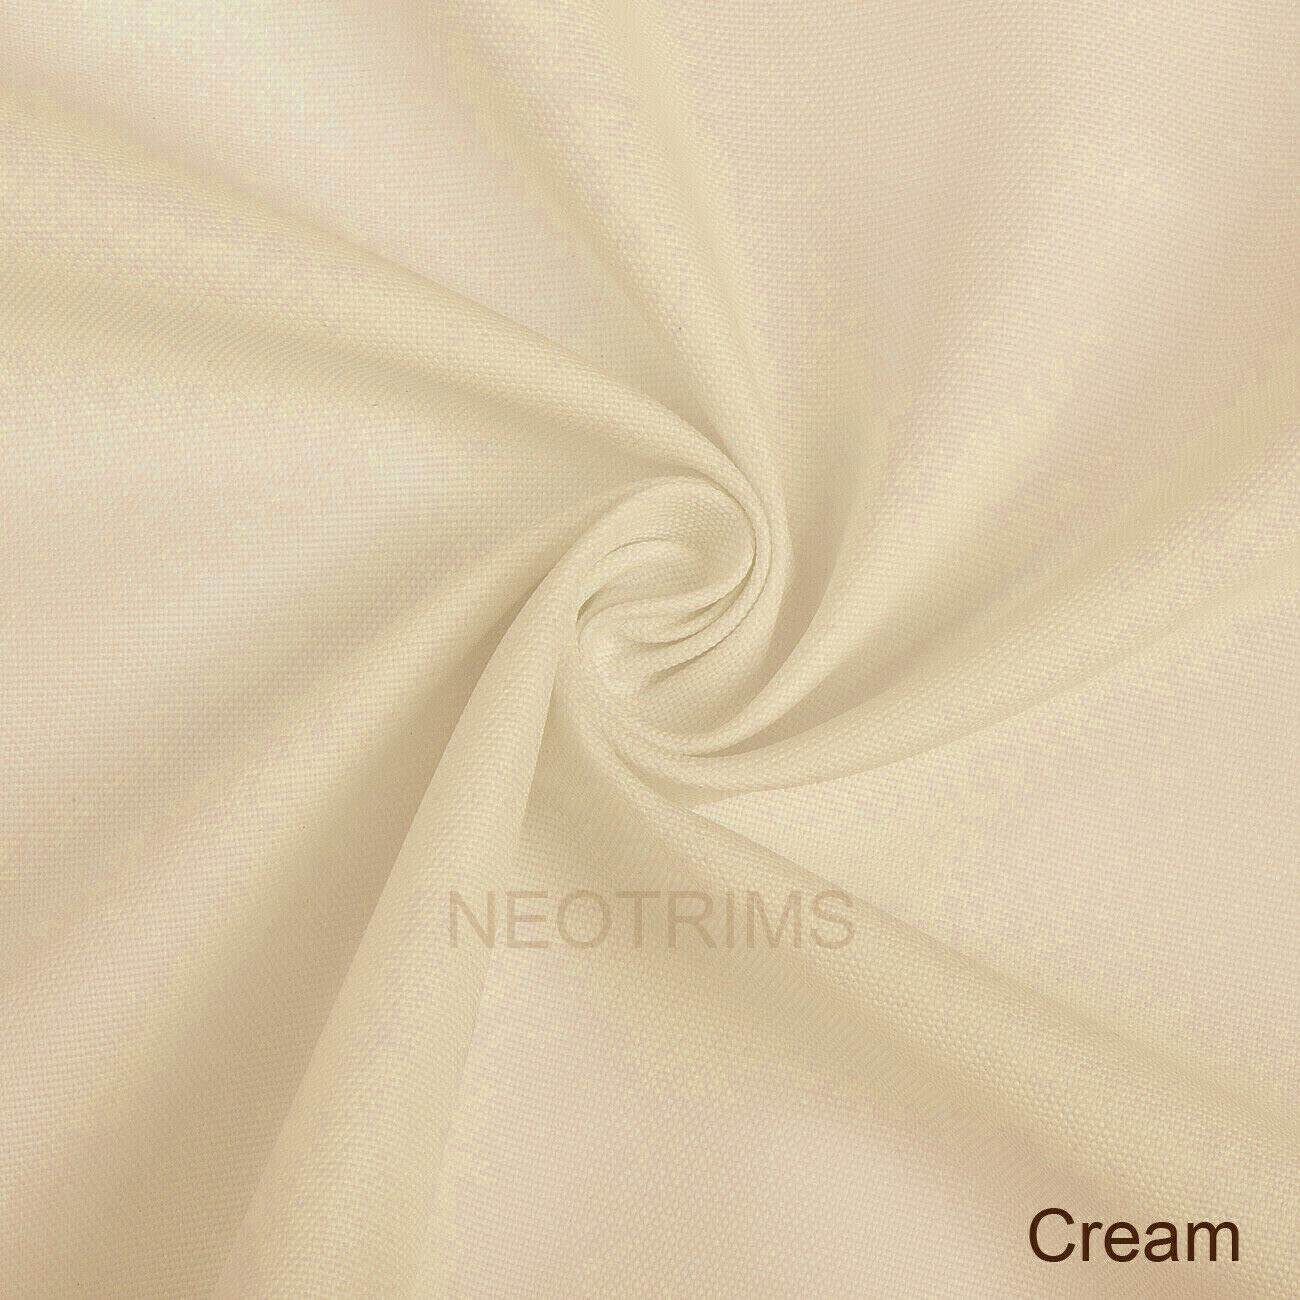 Waterproof Canvas Fabric Material by Neotrims 12 Colours for Upholstery Beanbags /& Covering Home Garden /& Marine Water Balls Slide off Fabric Best Quality 800 Denier Thick Heavy Duty Outdoor